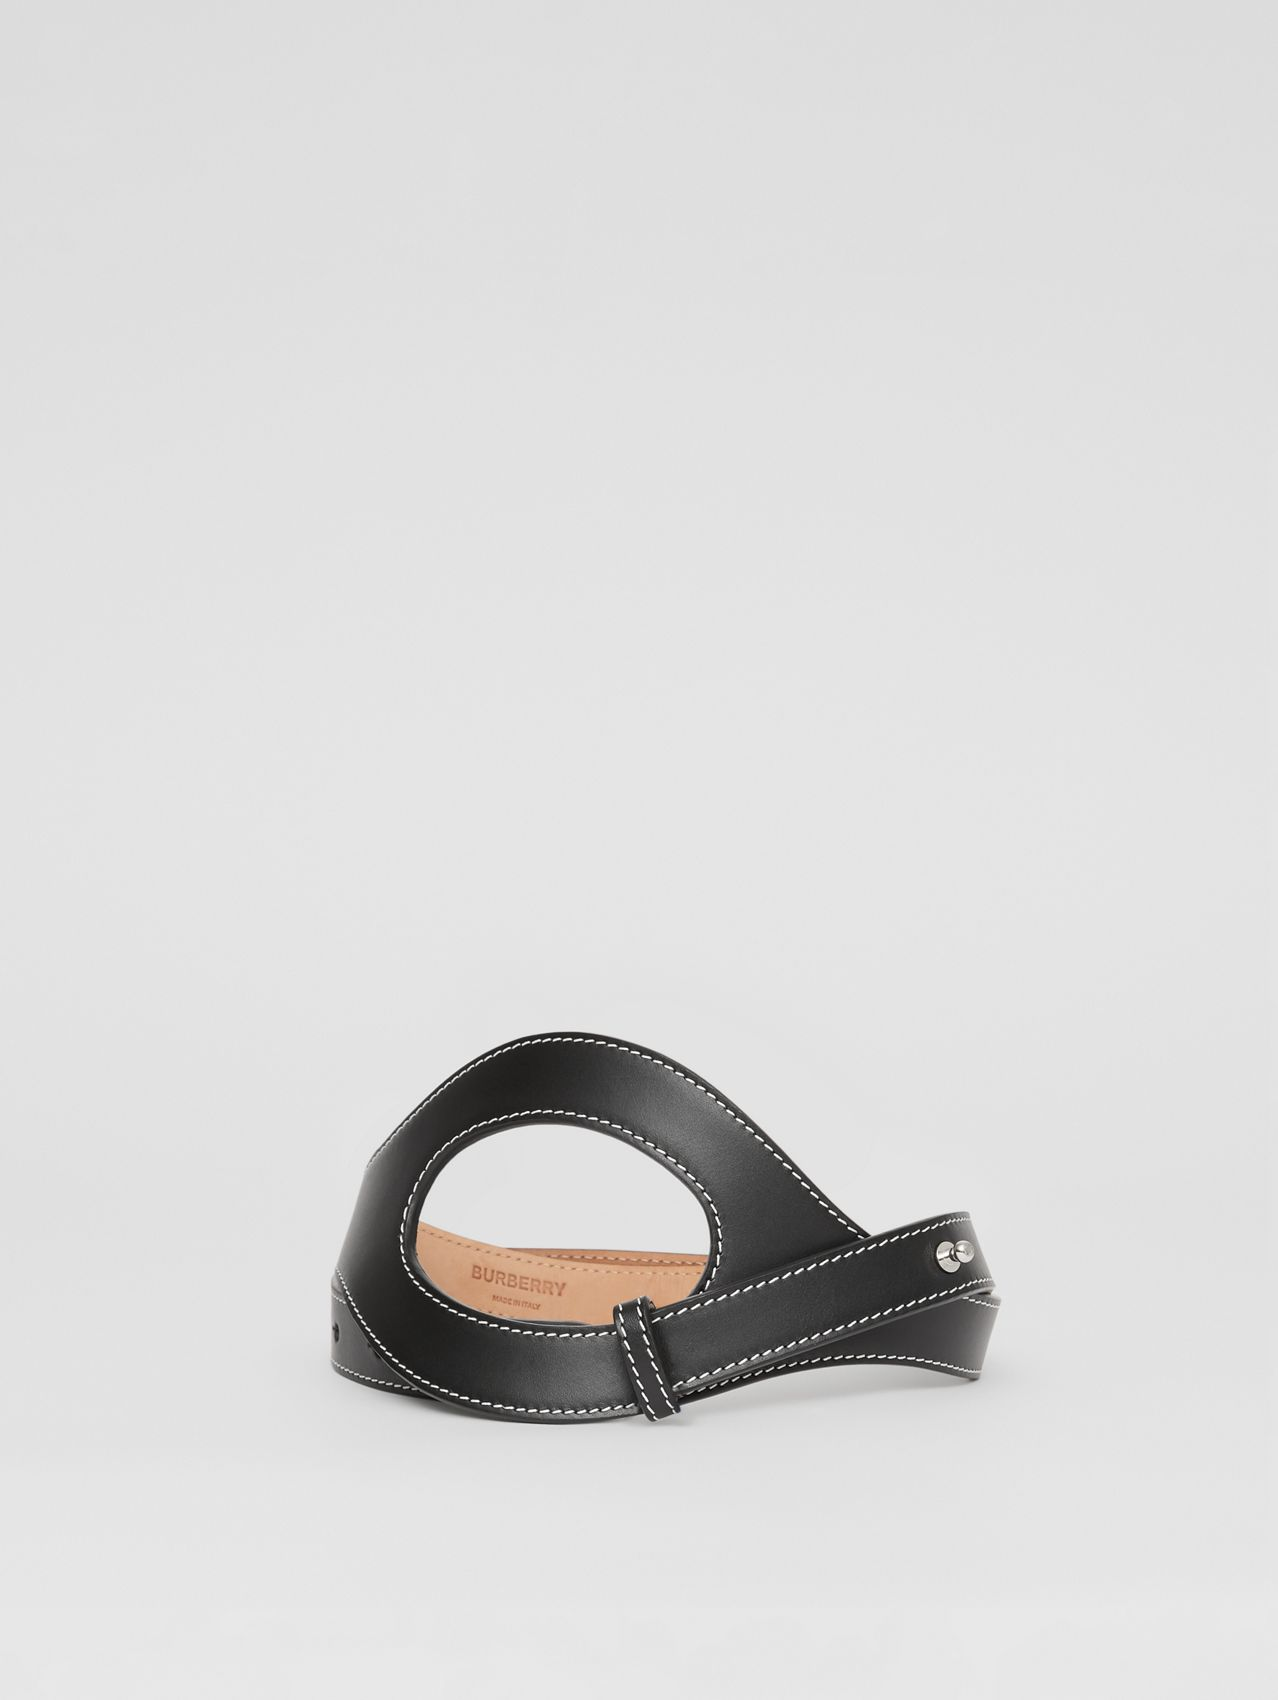 Cut-out Detail Topstitched Leather Belt in Black